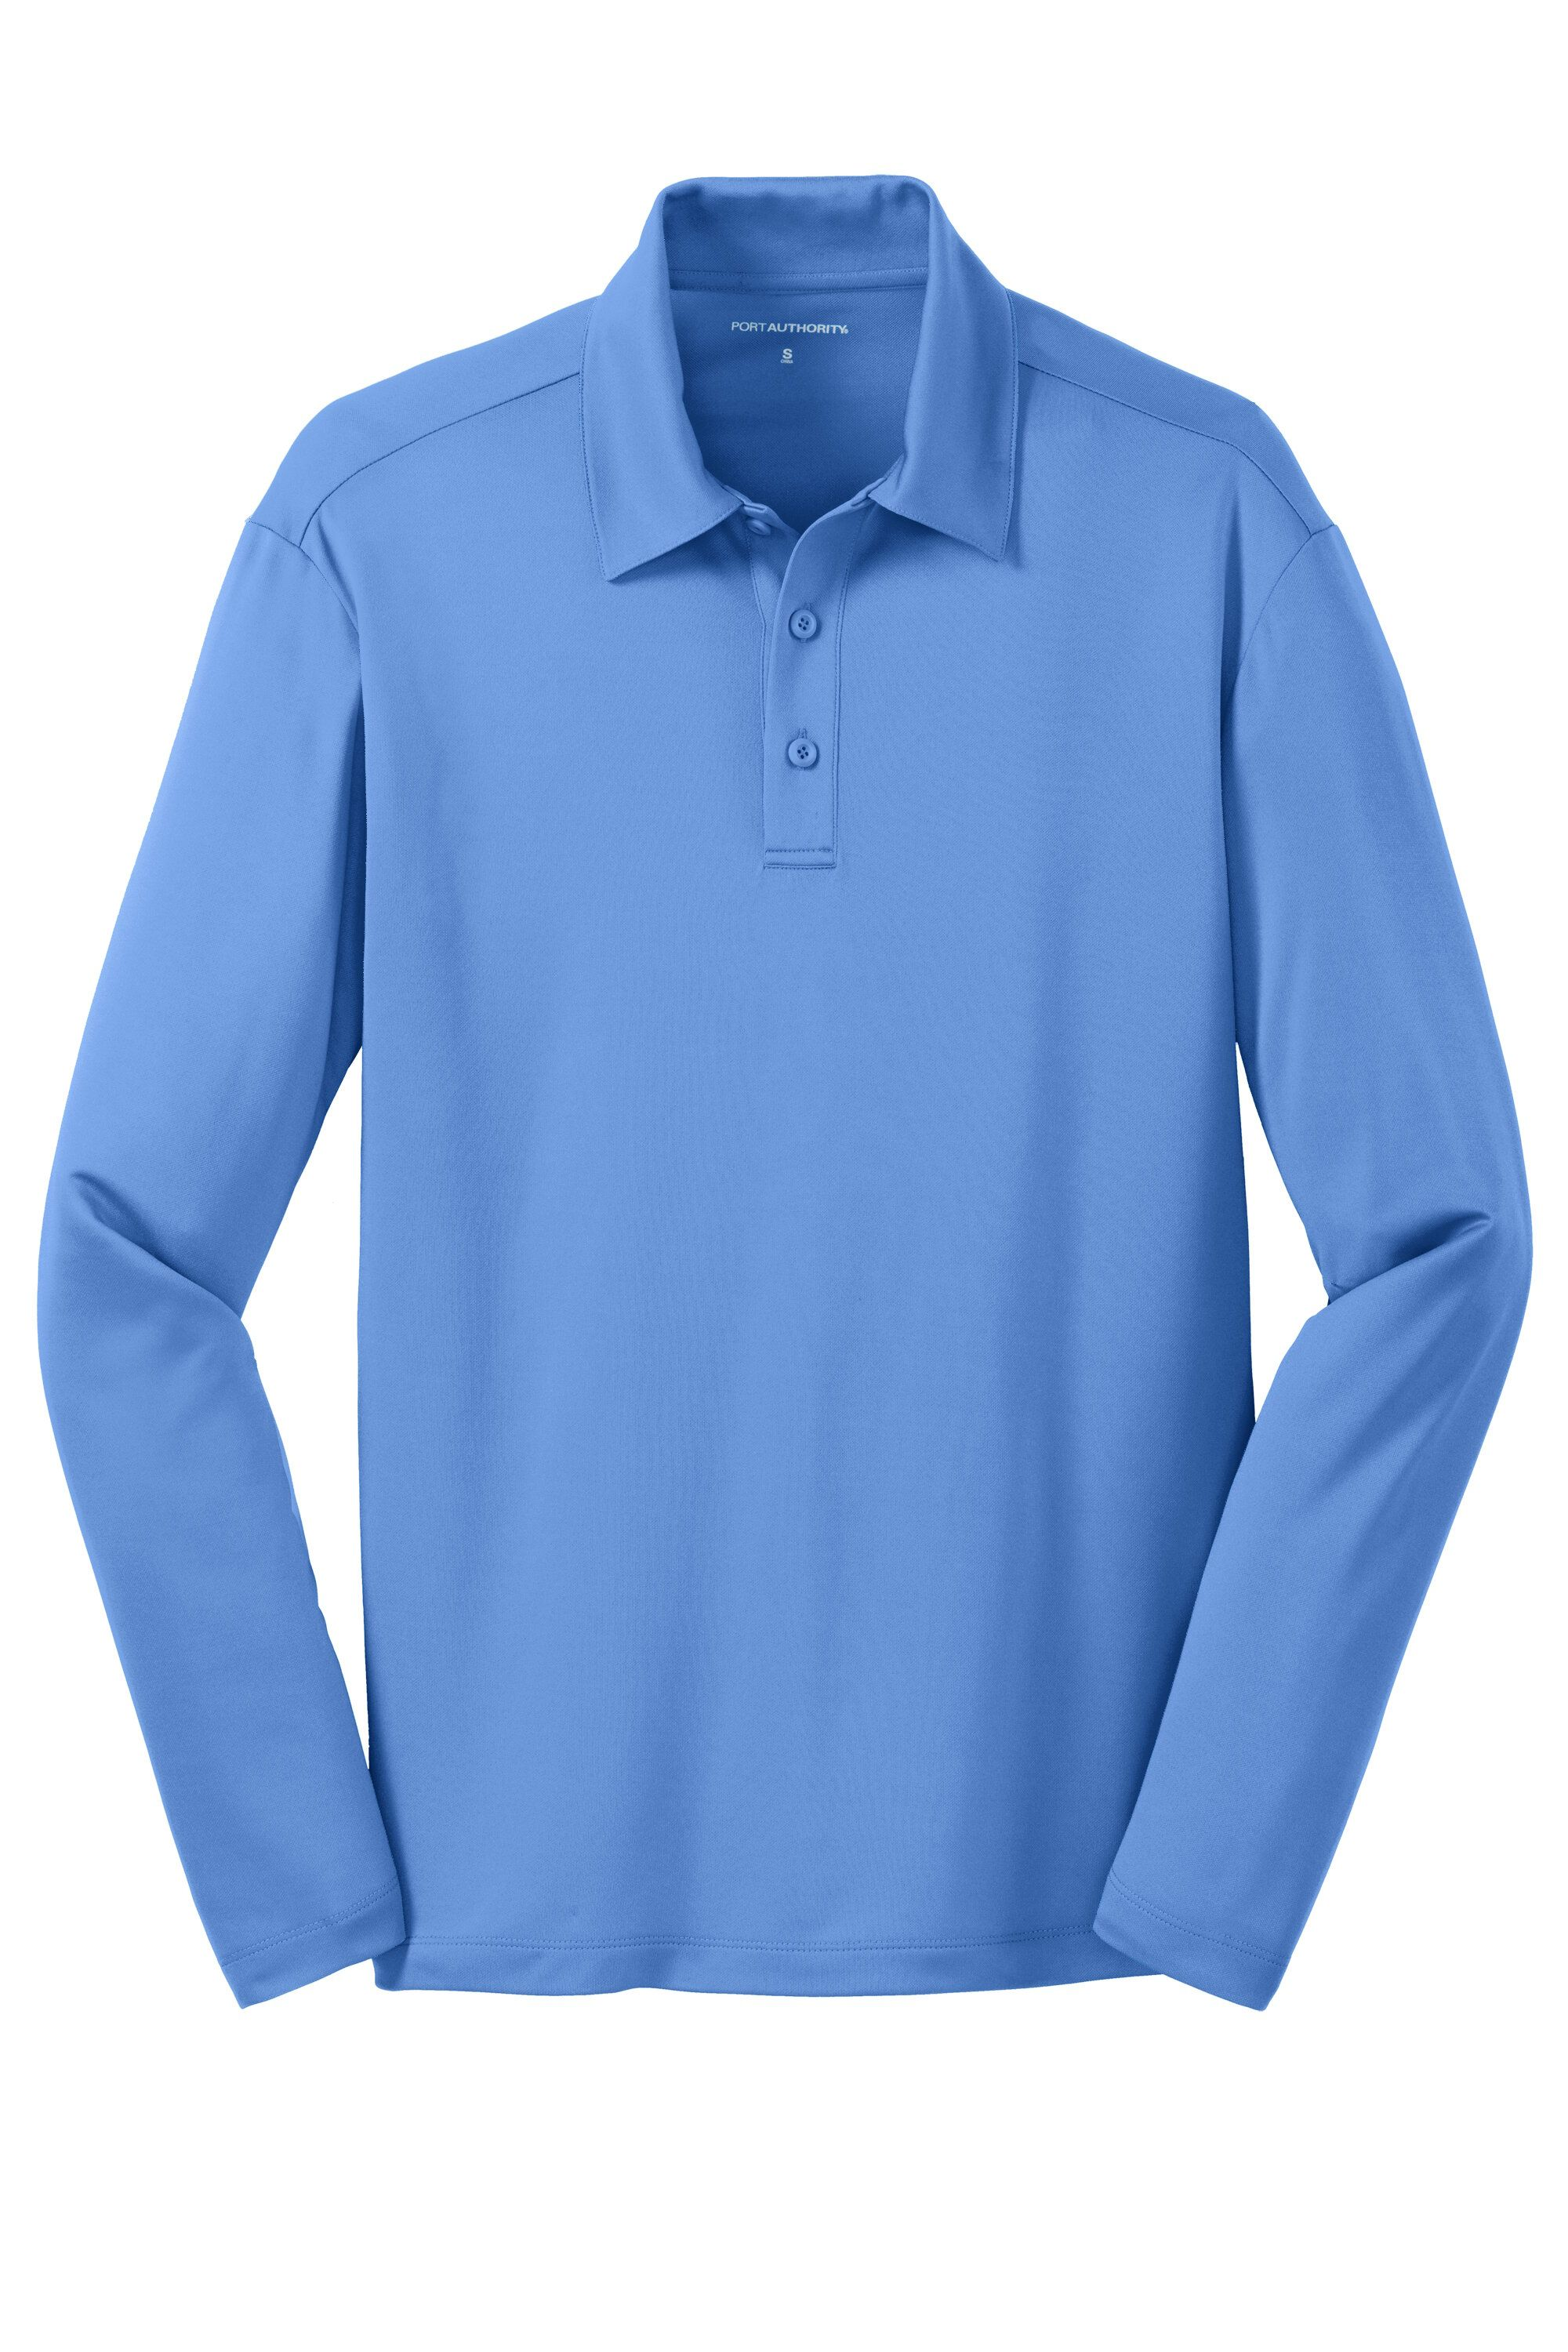 Port Authority Mens Silk Touch Performance Polyester Long Sleeve